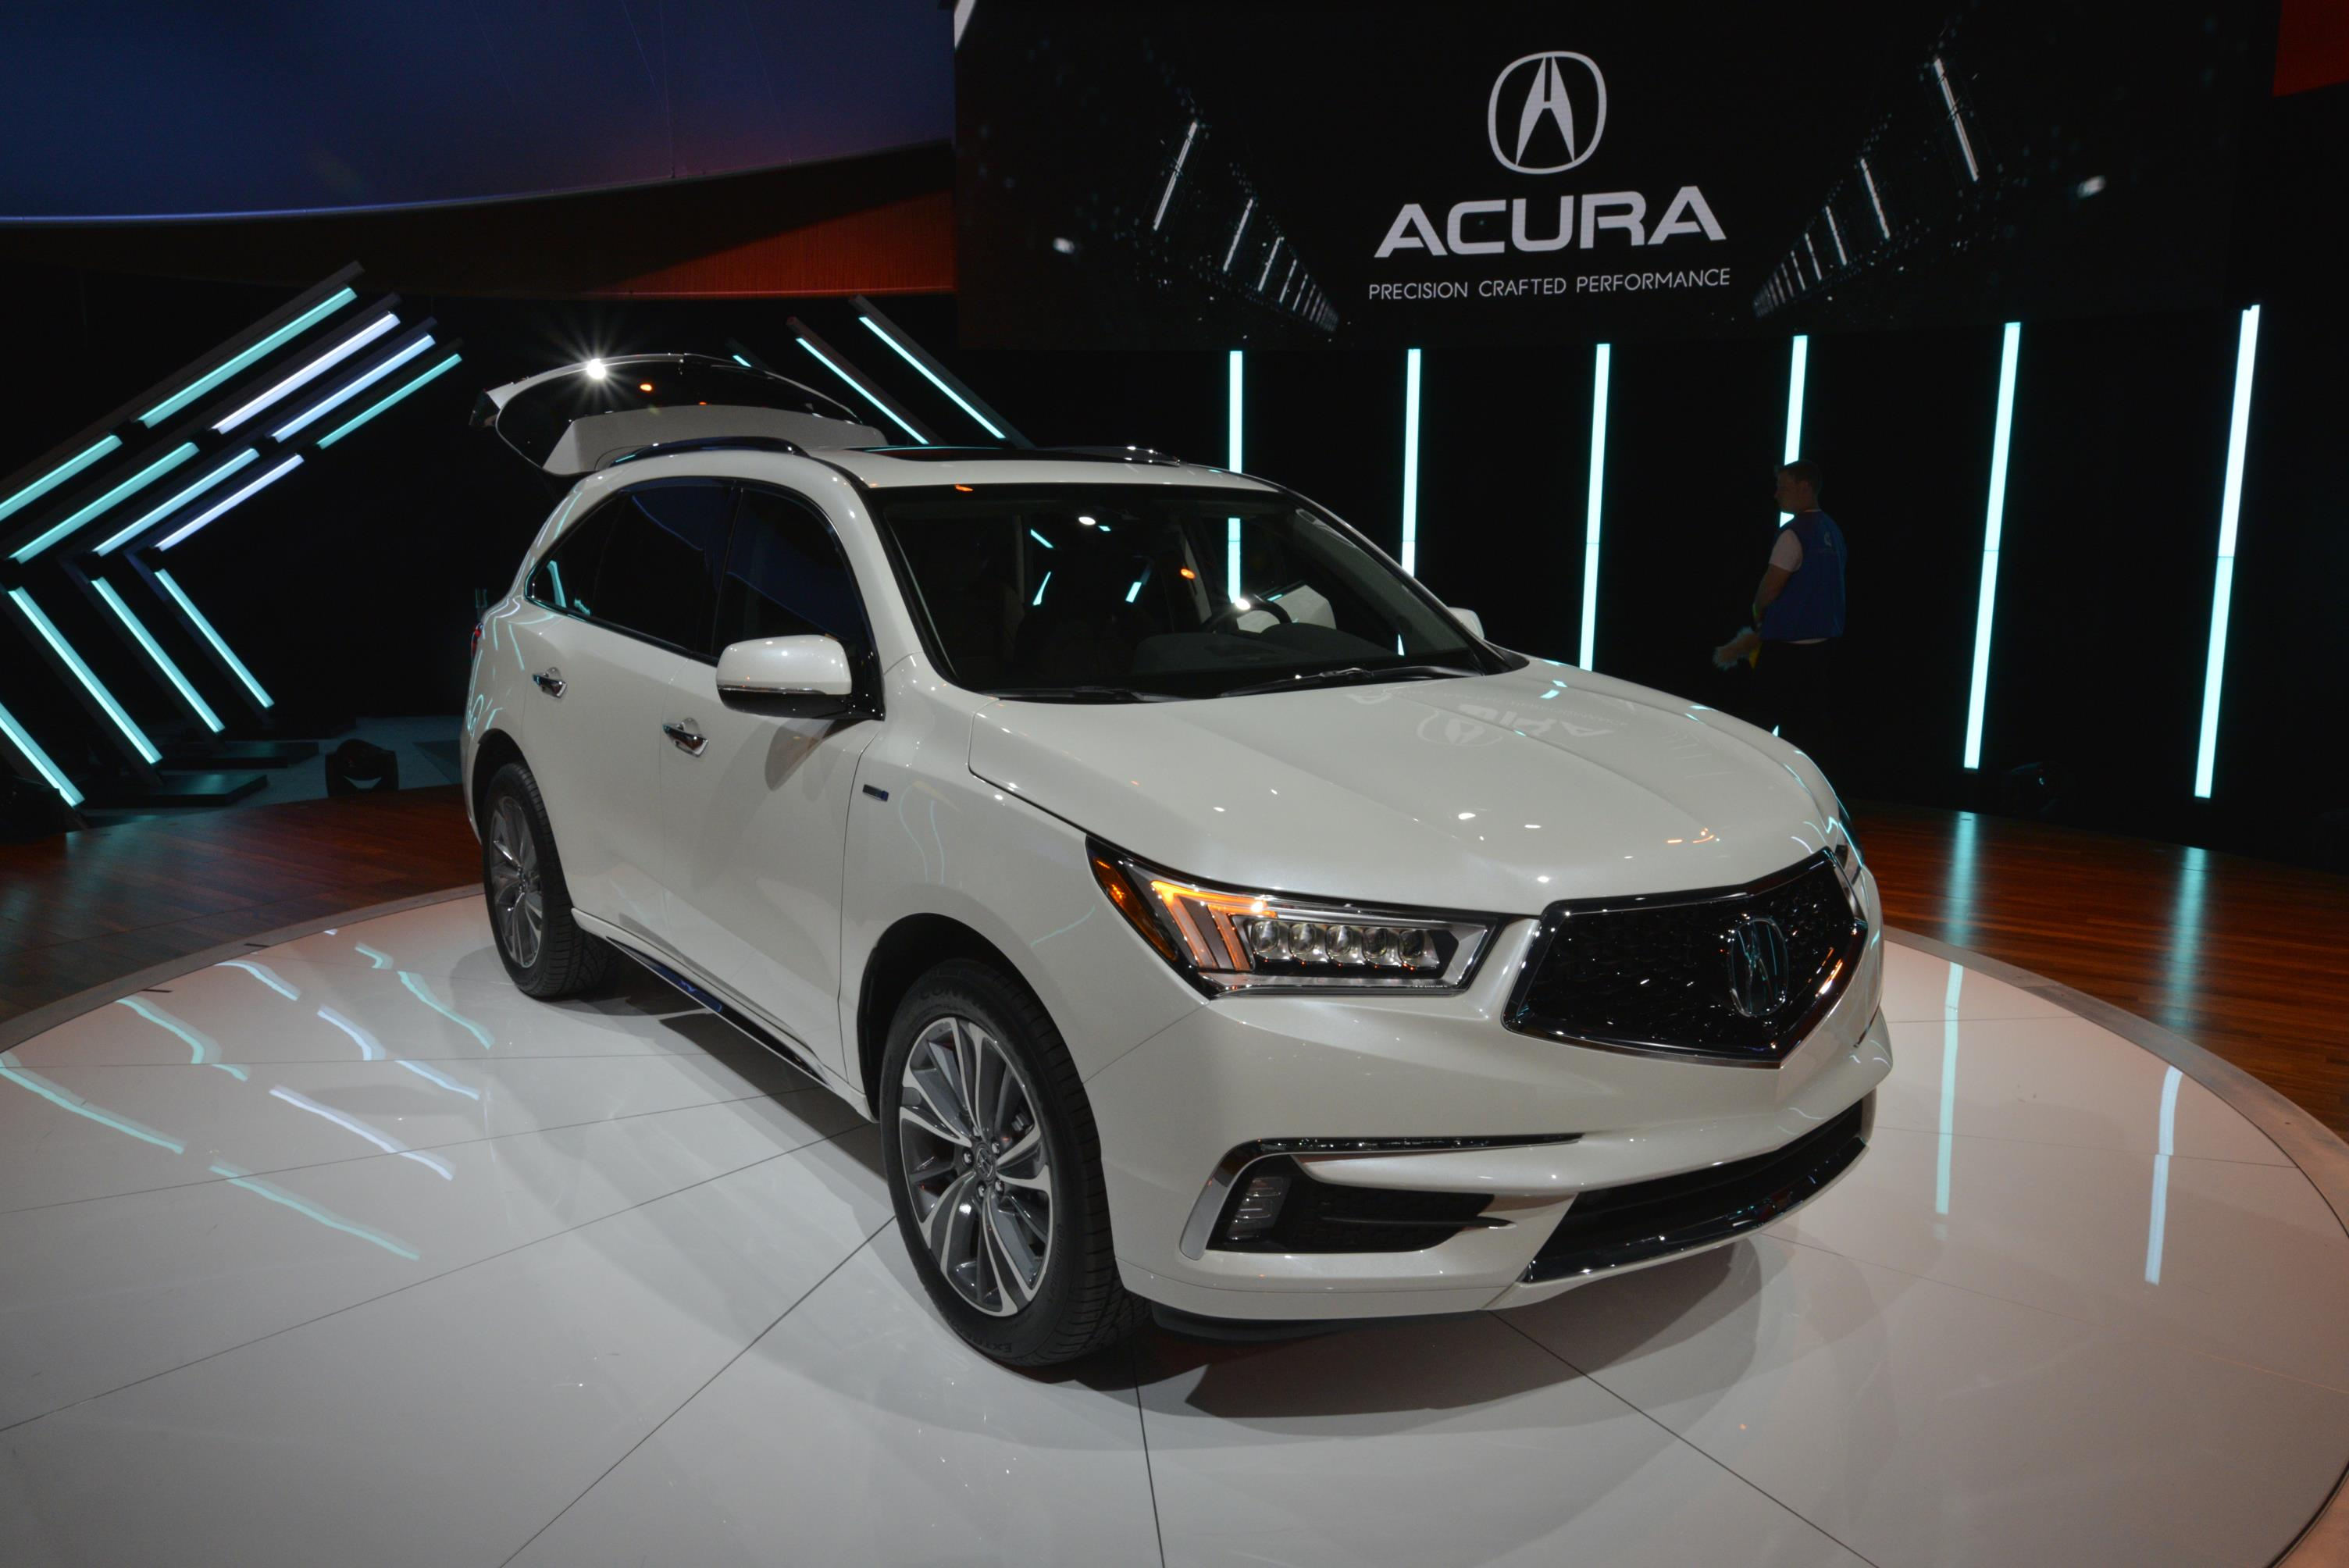 Worksheet. 2017 Acura MDX Priced From 43950 Sport Hybrid SHAWD Due Later